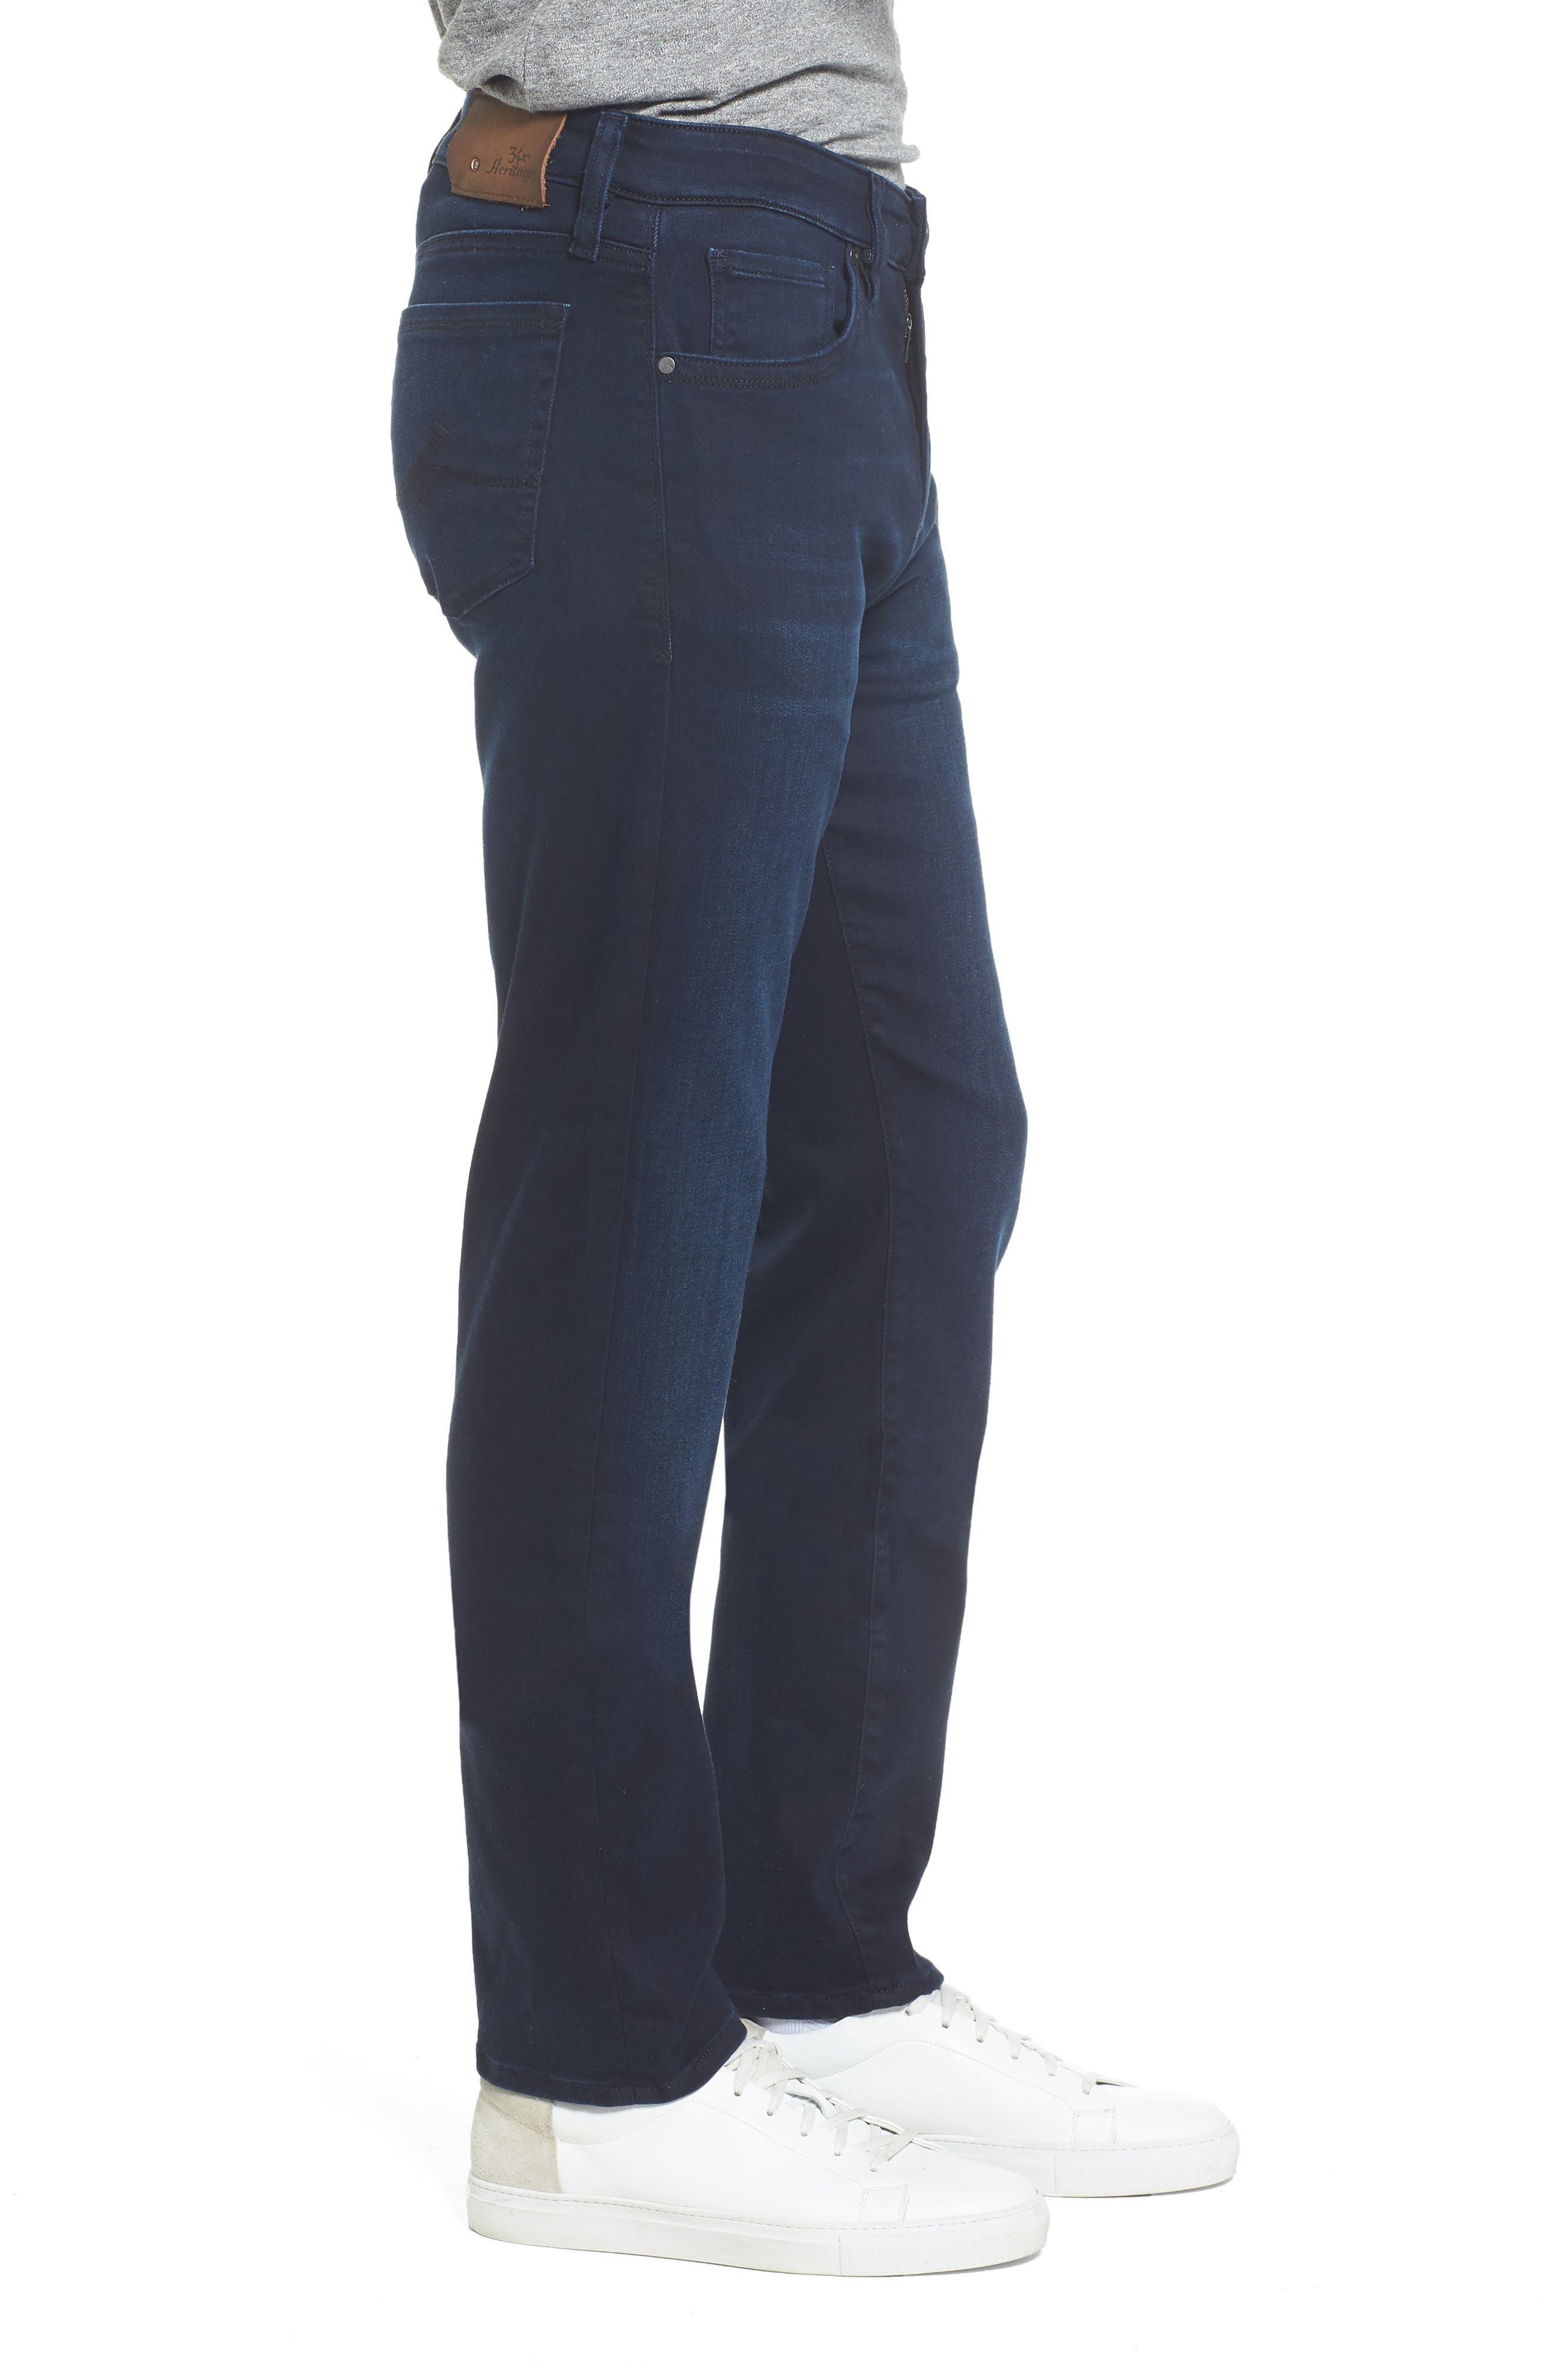 Courage Straight Fit Jeans,                             Alternate thumbnail 3, color,                             401